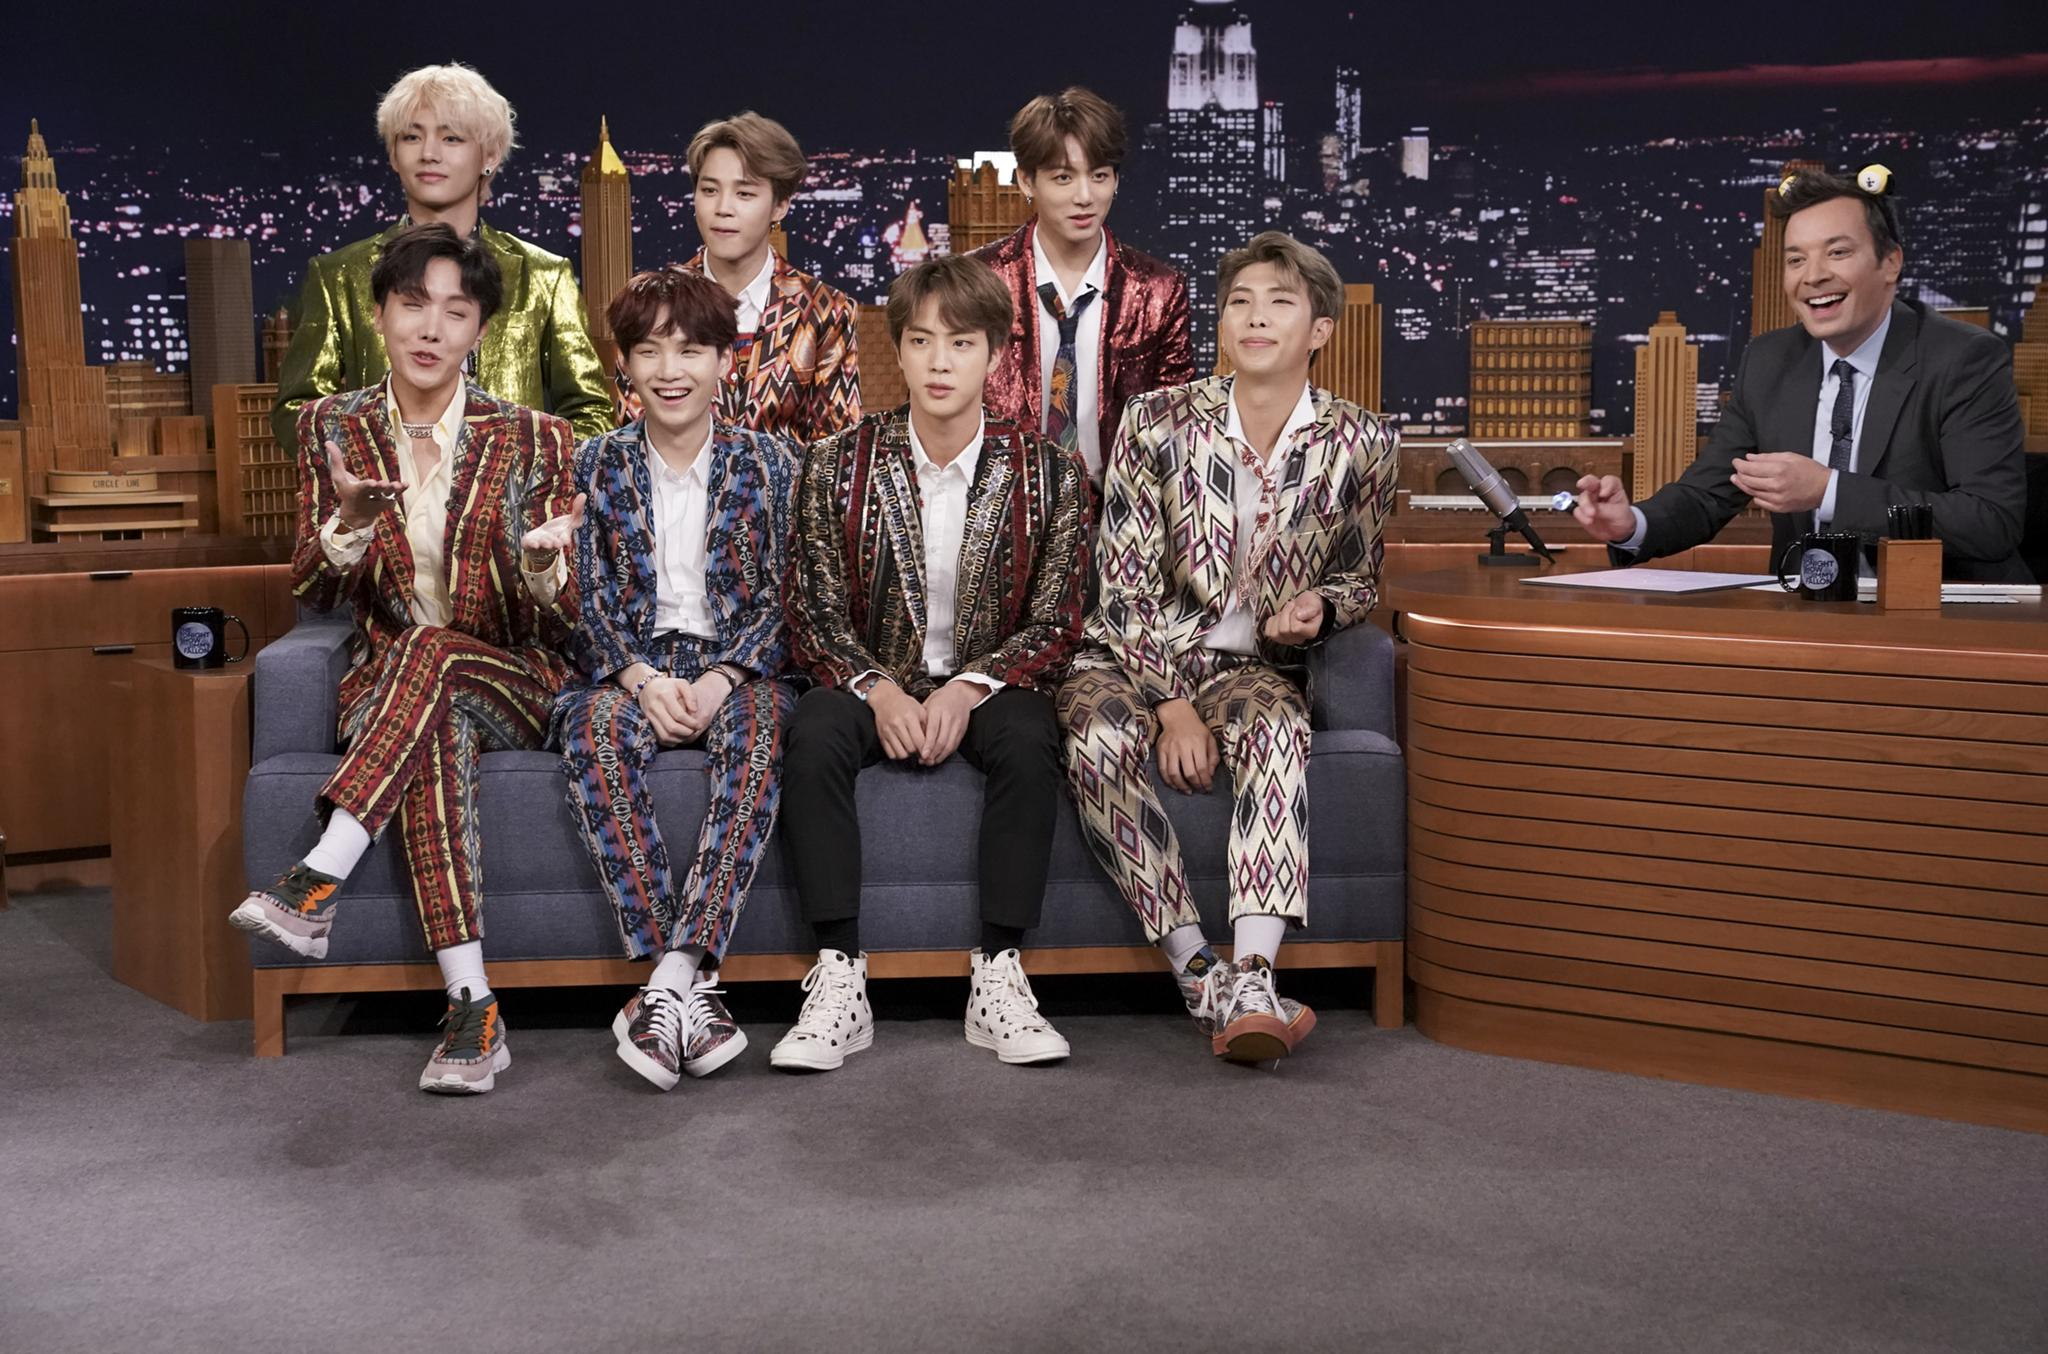 BTS lit up @FallonTonight... and Twitter loved it https://t.co/554mUw8yP2 https://t.co/POC1ivbYWV